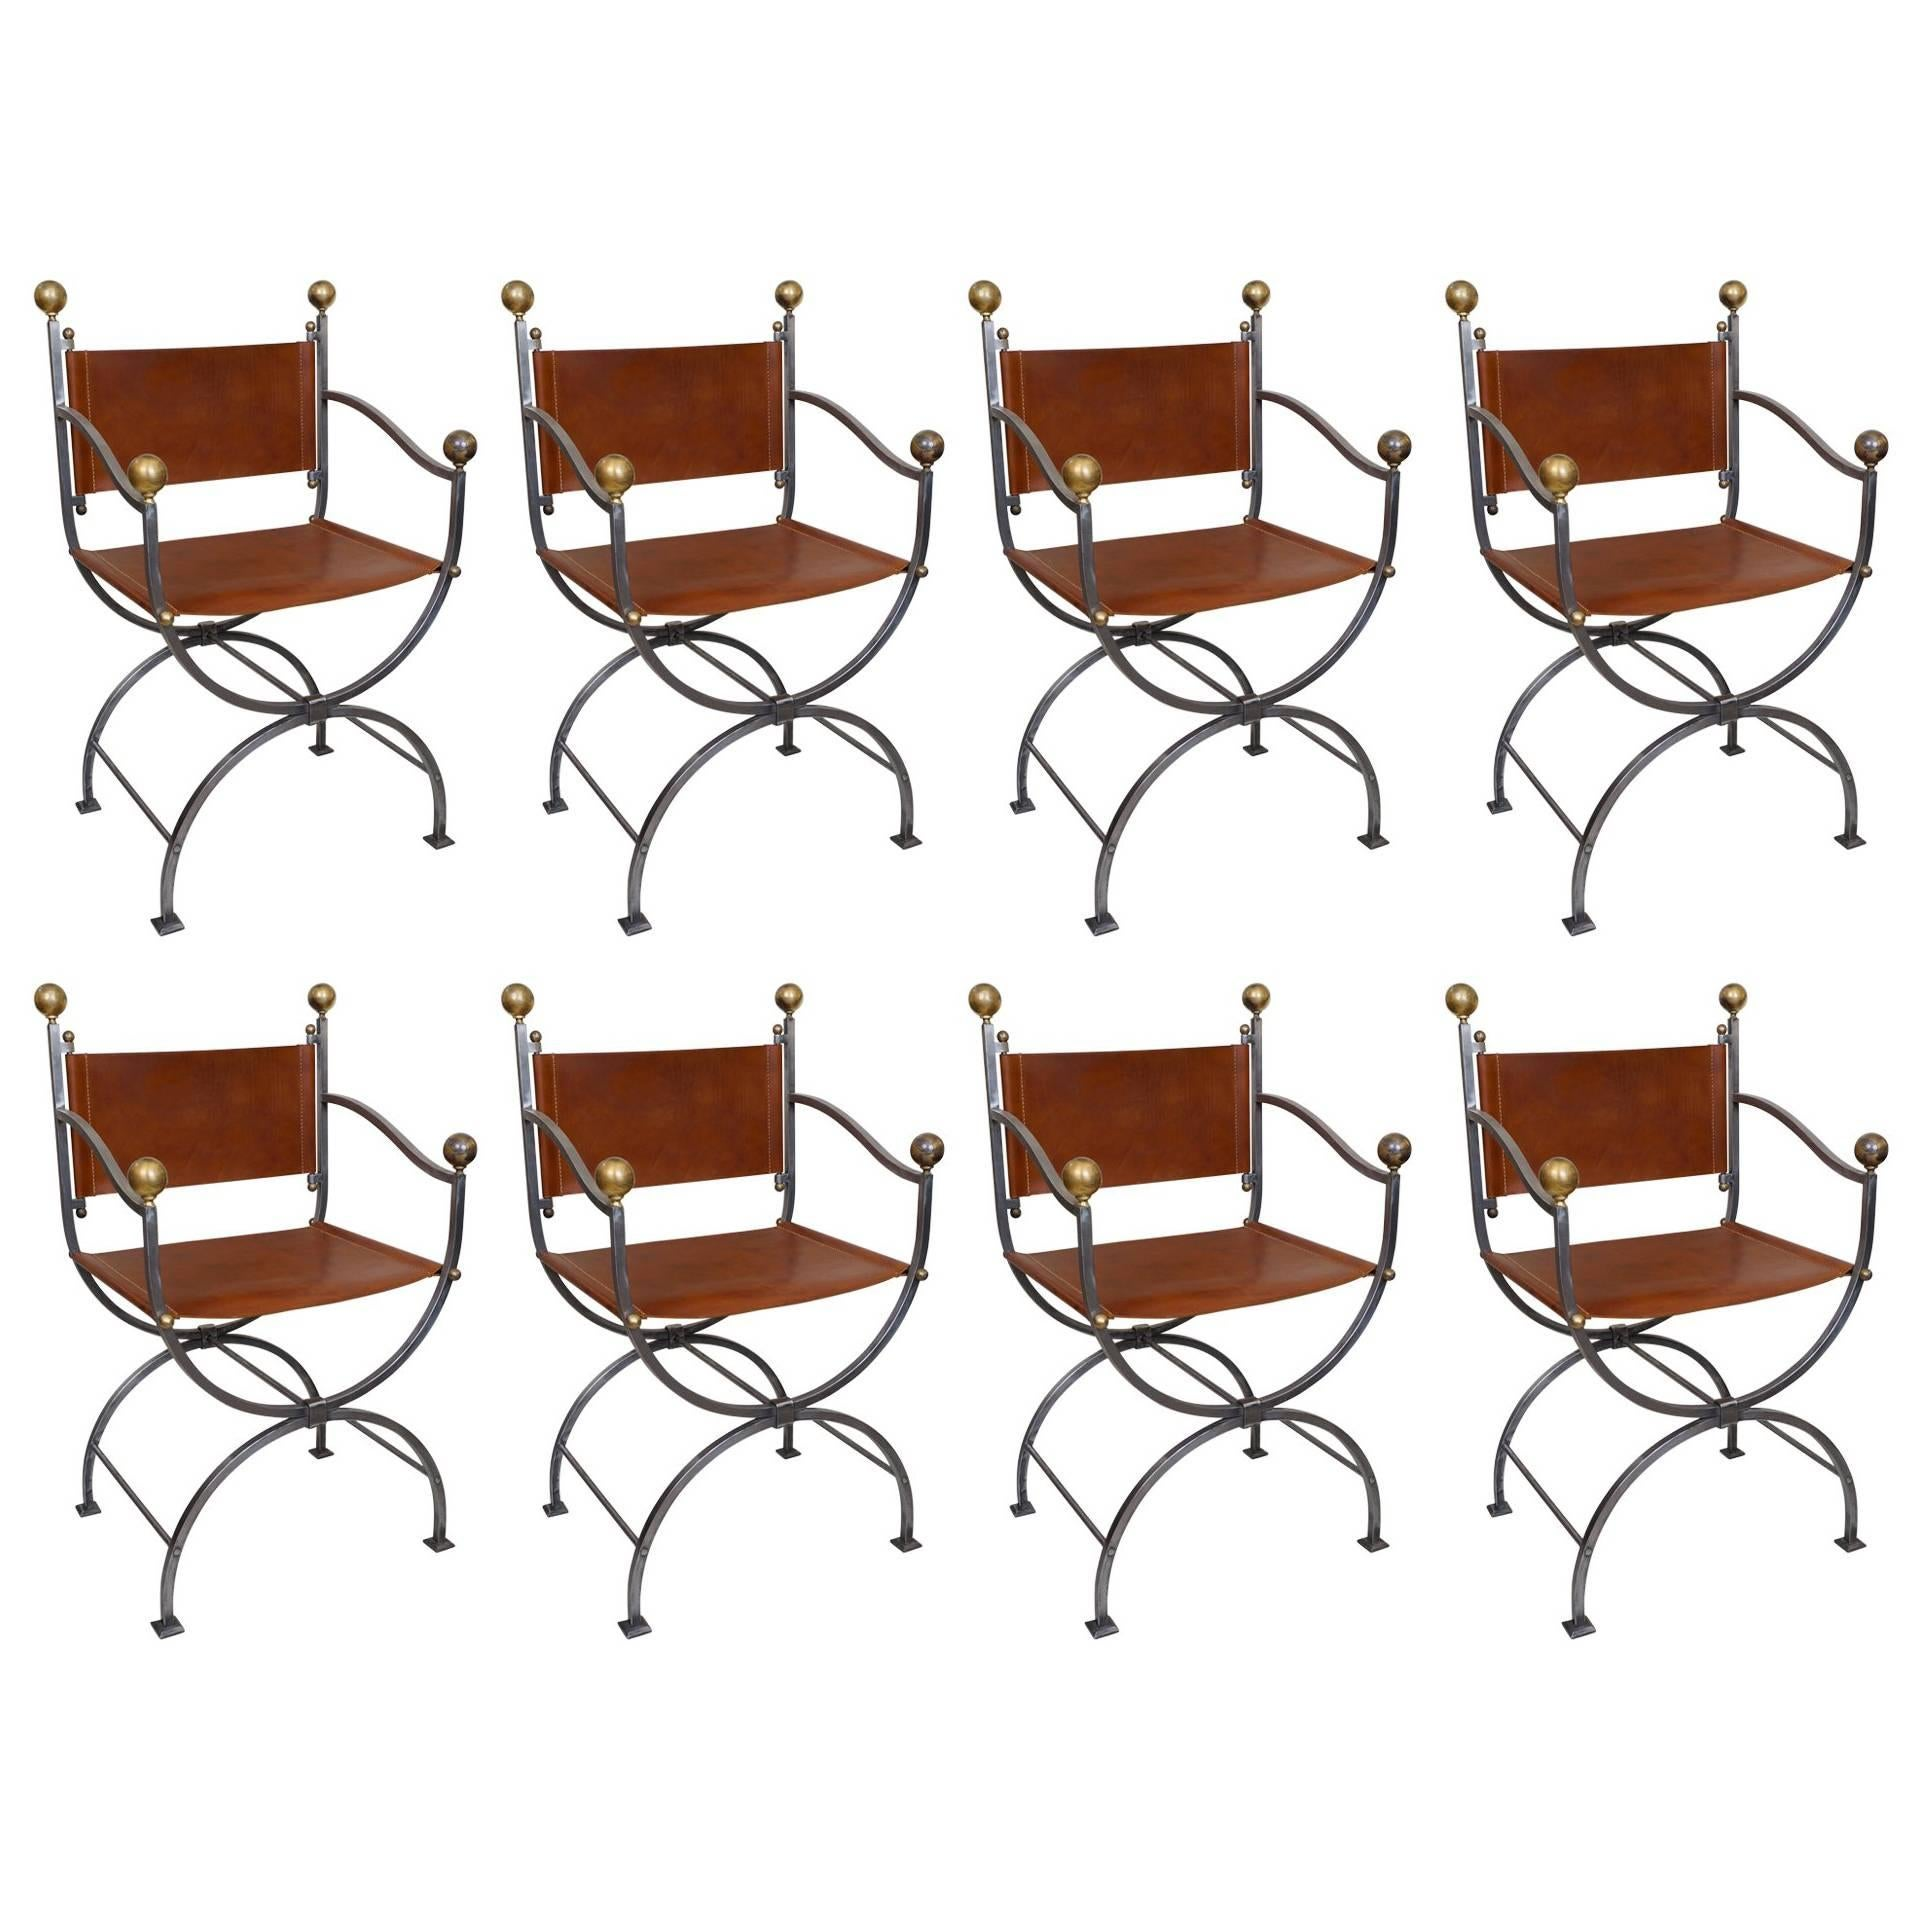 Suite Of Eight Wrought Iron, Brass And Leather Dining Room Armchairs For  Sale